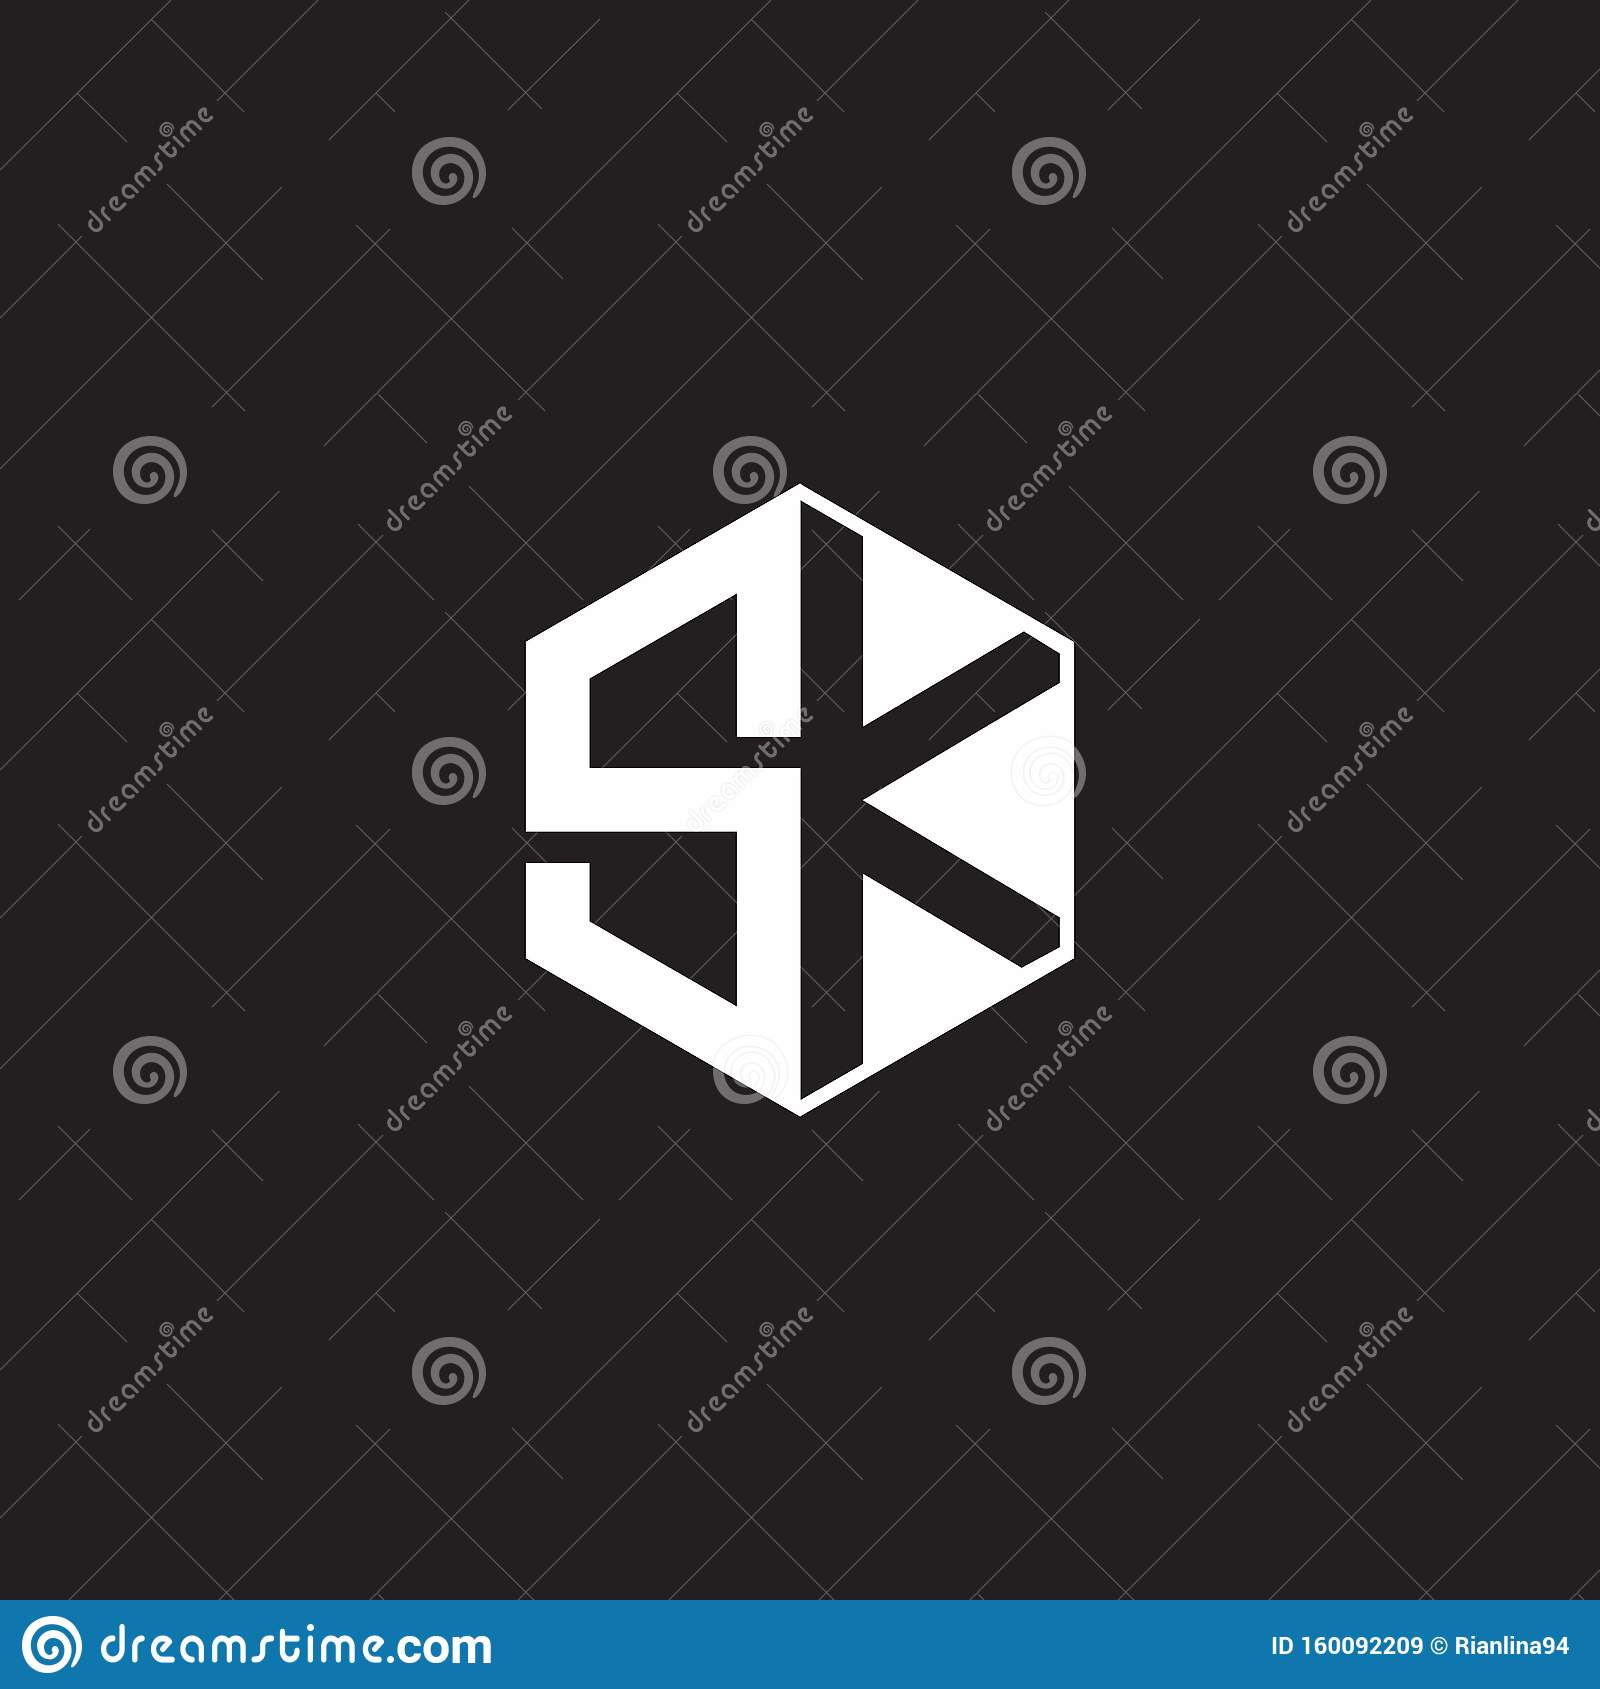 Sk Logo Monogram Hexagon With Black Background Negative Space Style Stock Vector Illustration Of Initials Letter 160092209